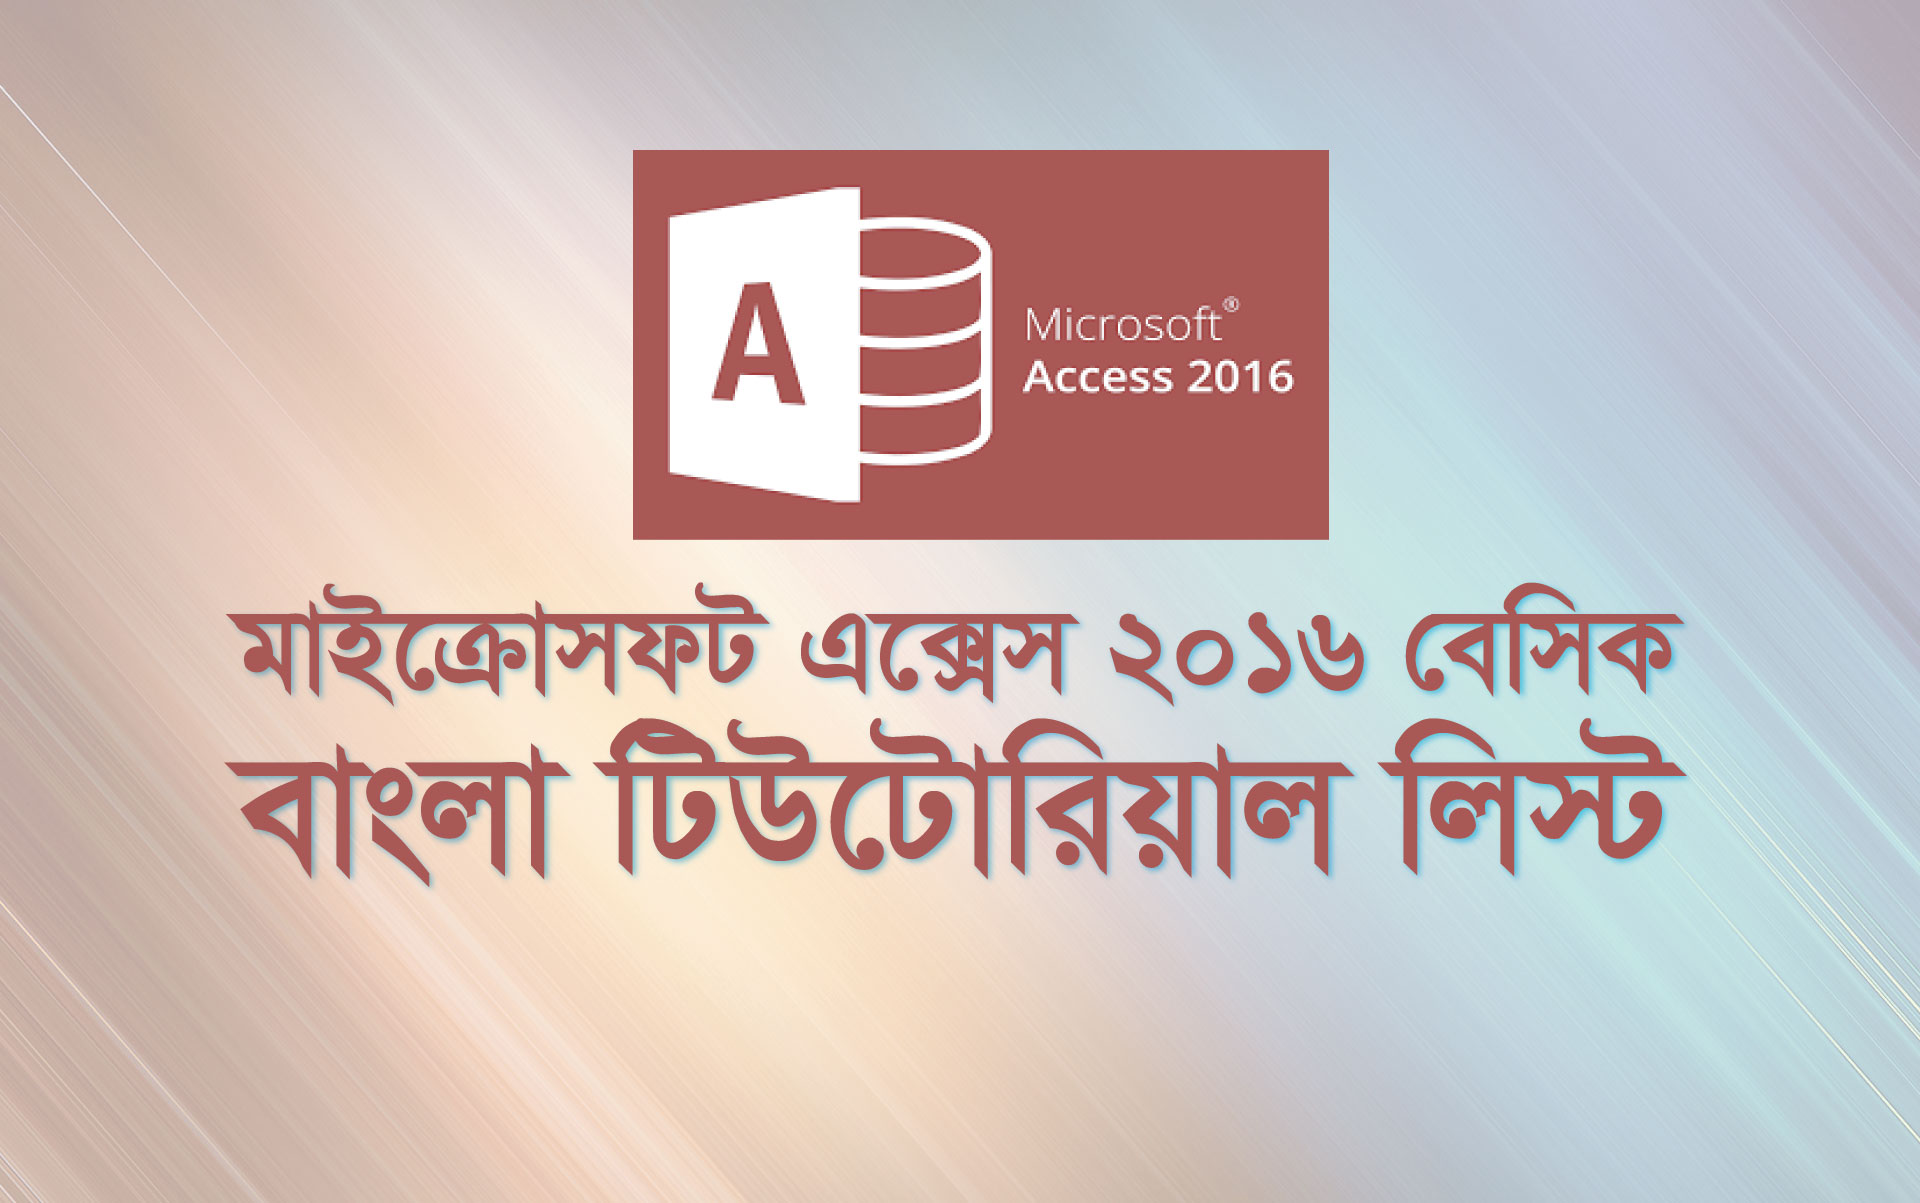 Microsoft Access 2016 Feature Image